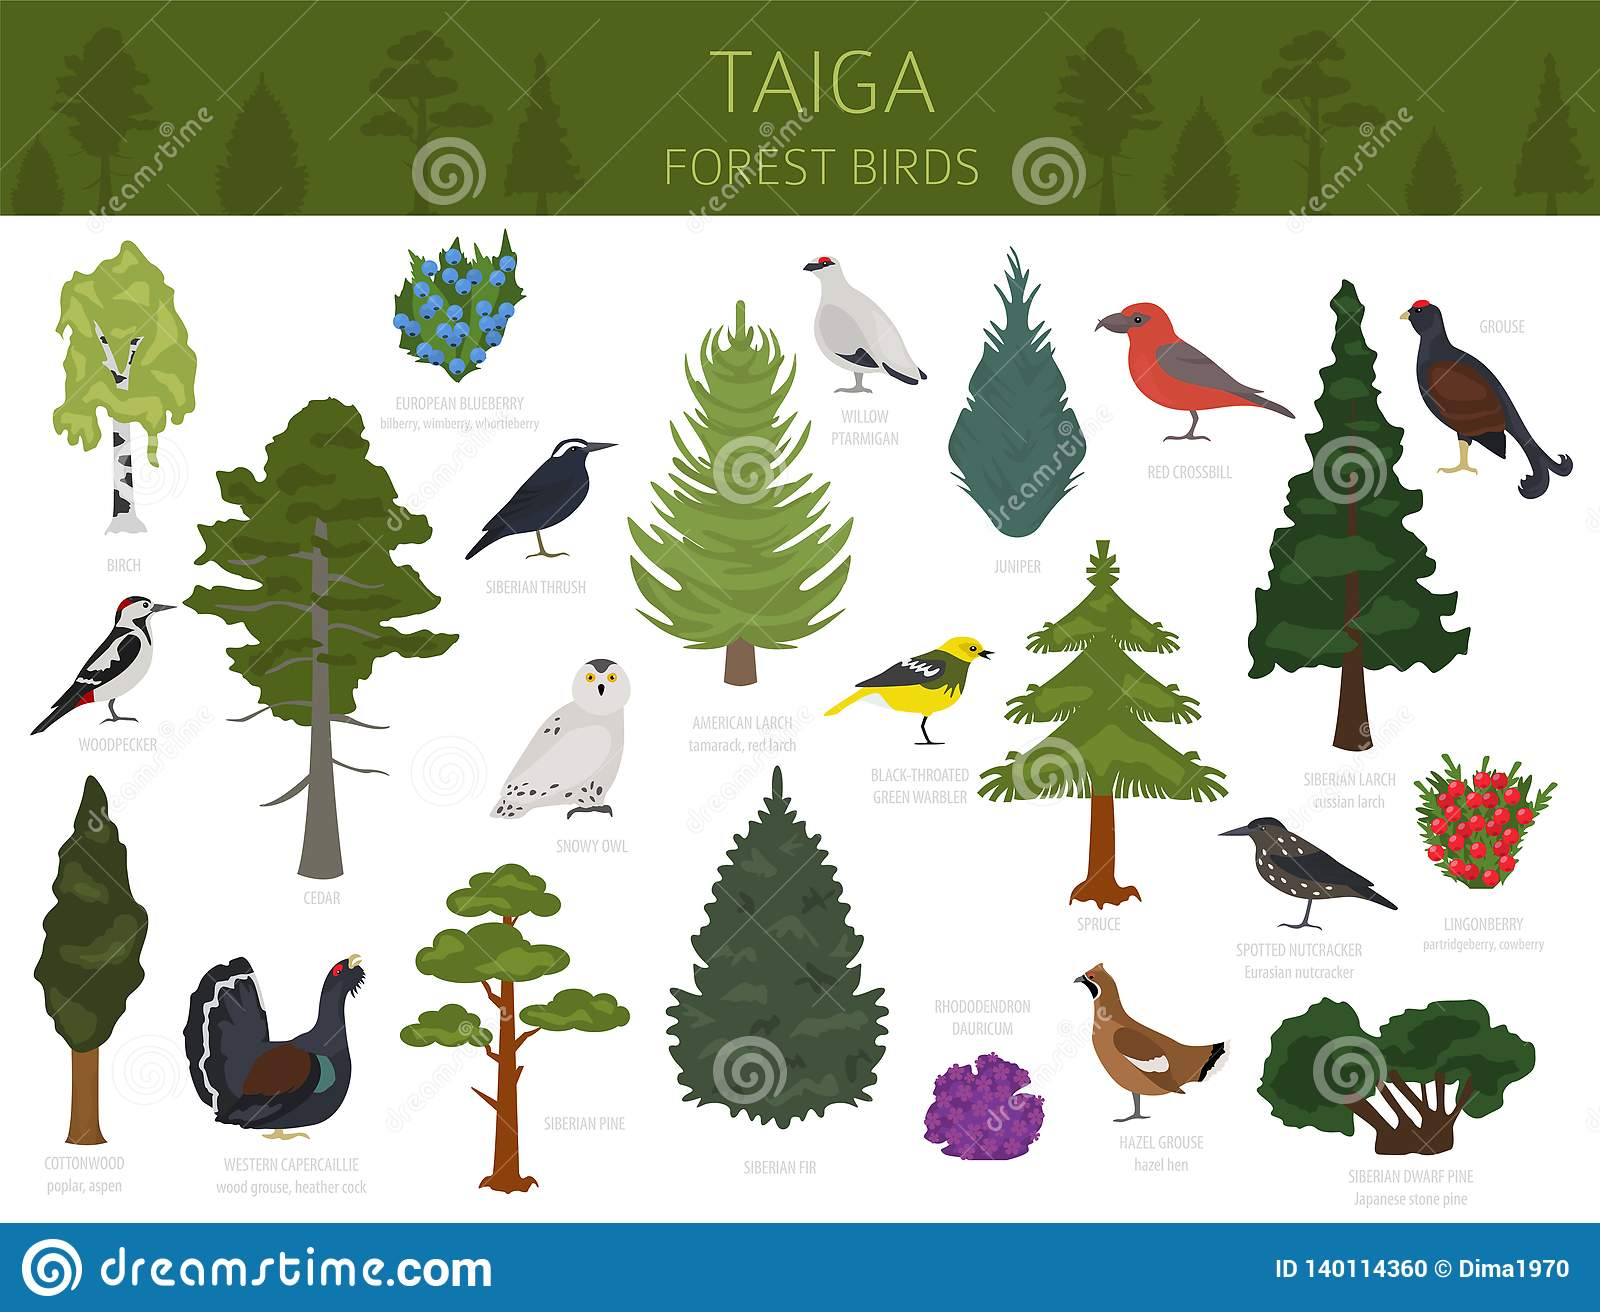 Winter the temperature is about 30f. Taiga Biome Boreal Snow Forest Terrestrial Ecosystem World Map Animals Birds Fish And Plants Infographic Design Stock Vector Illustration Of Cedar Infographic 140114360